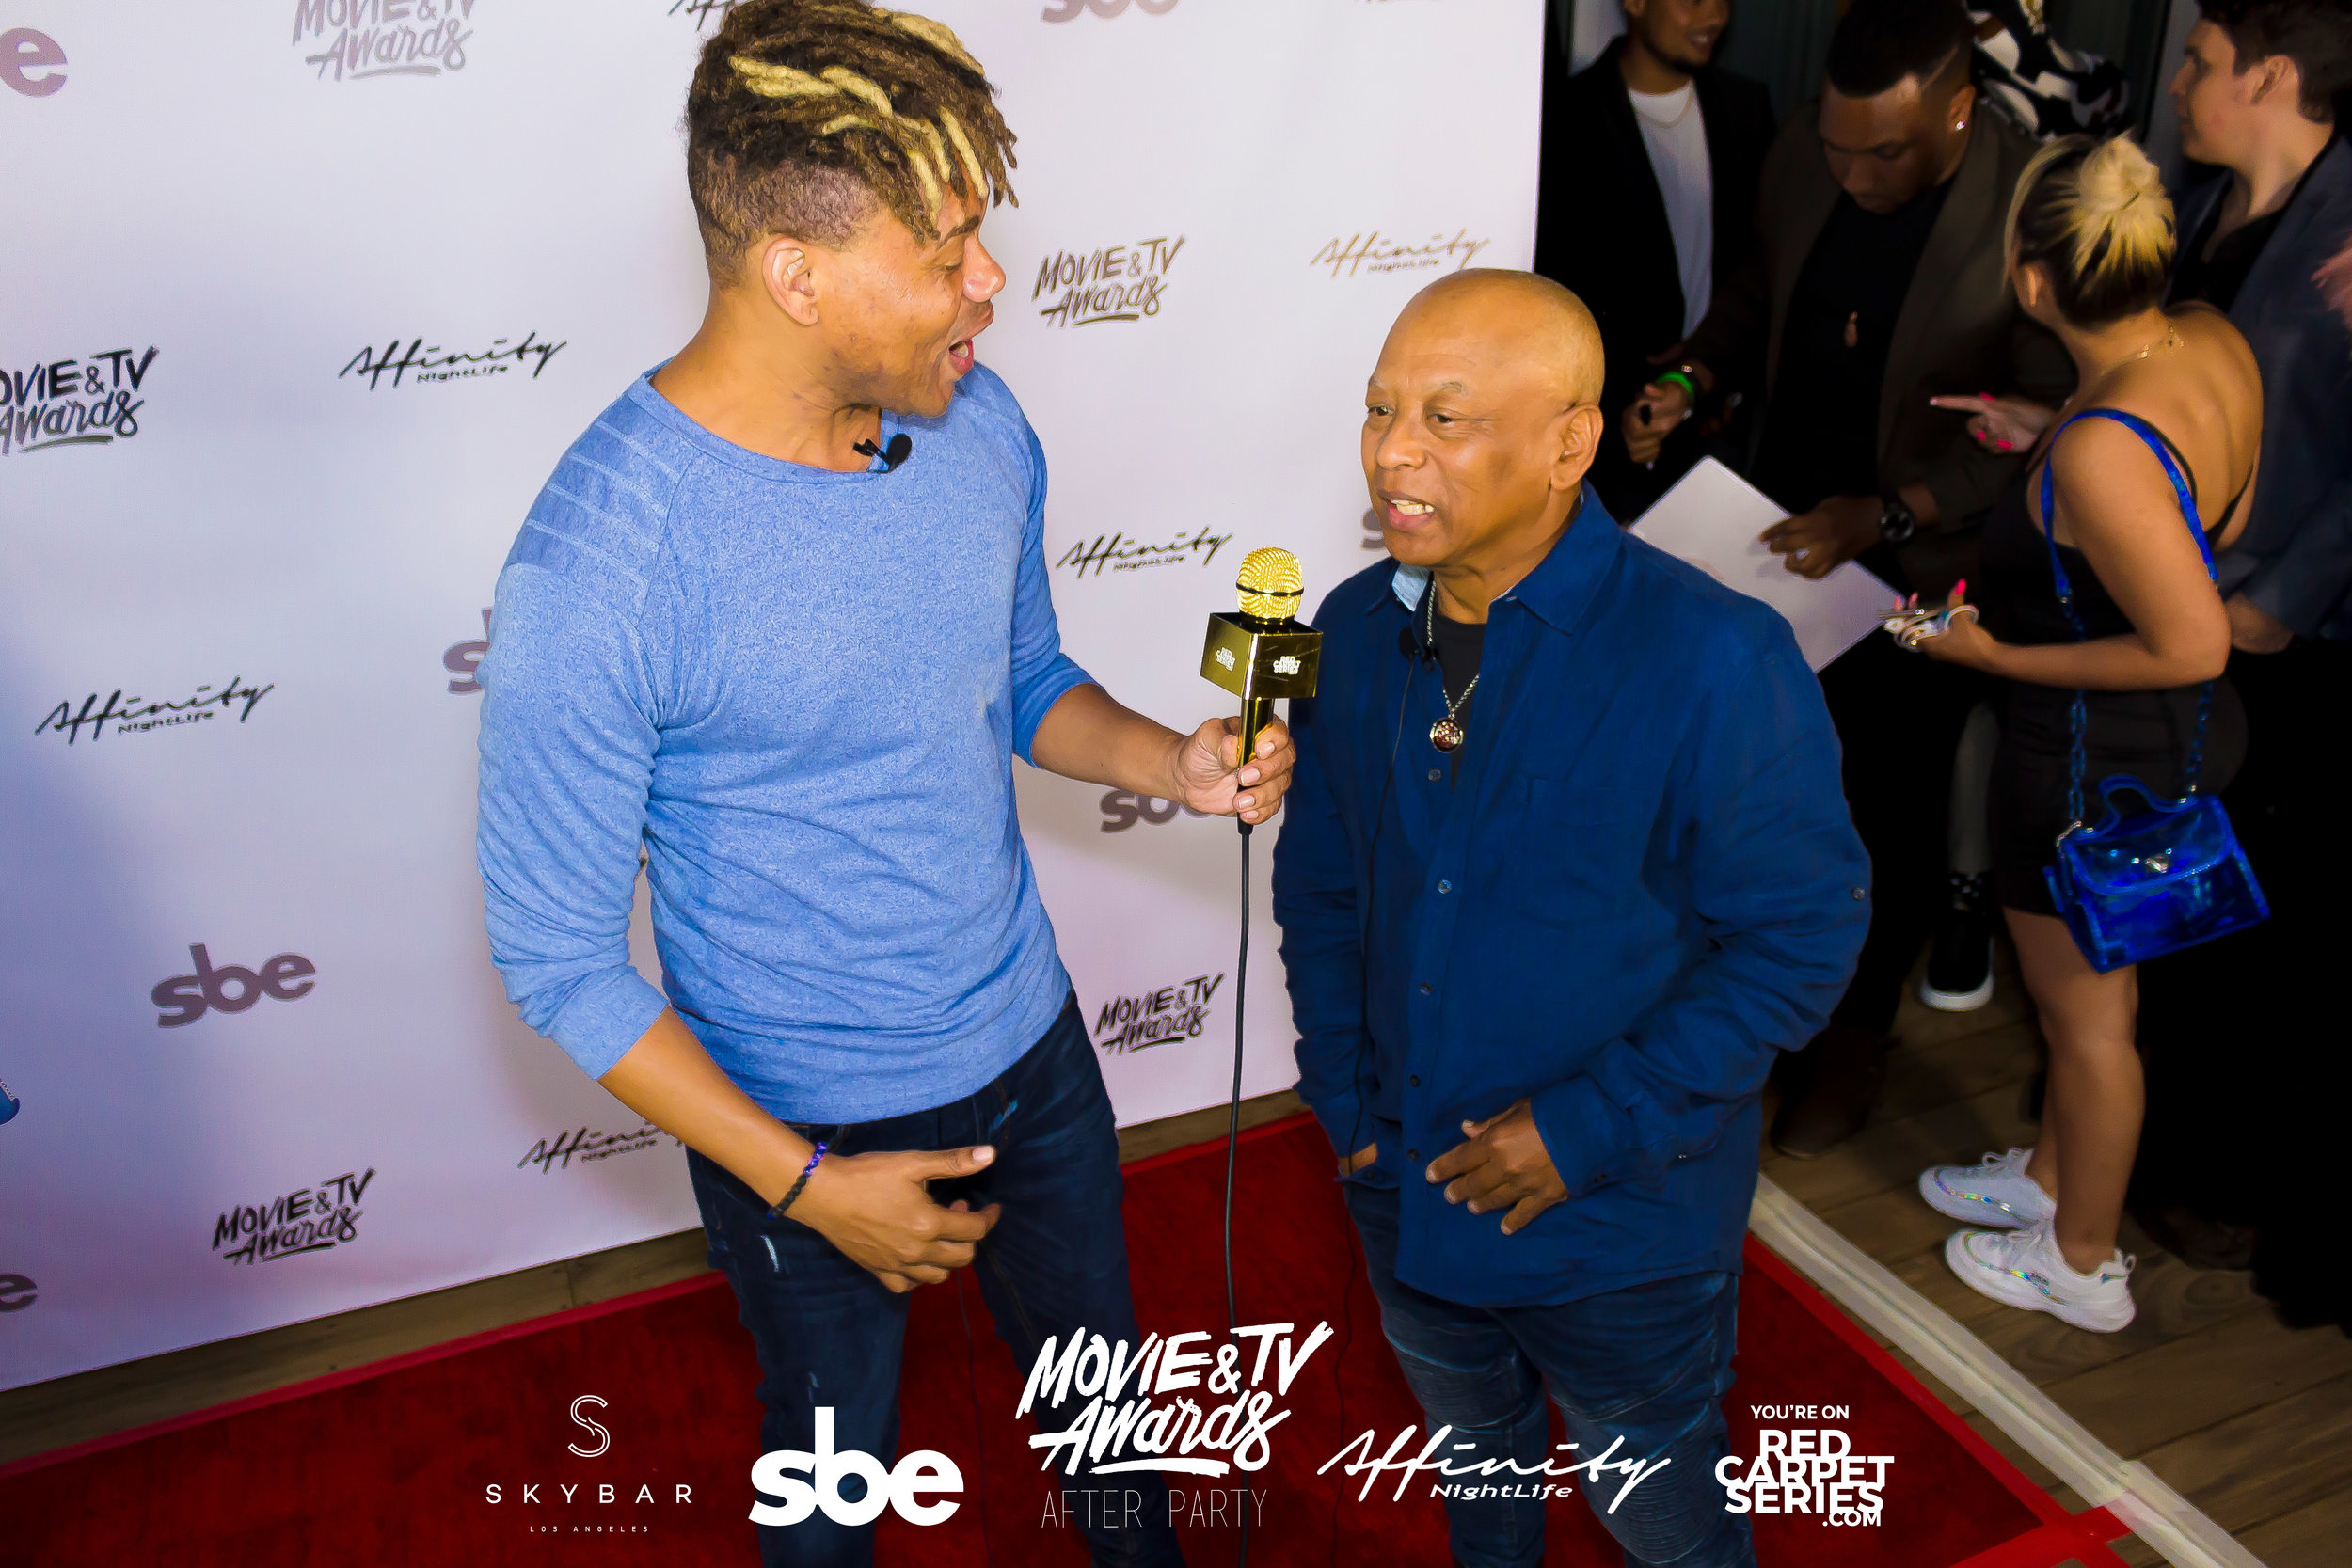 Affinity Nightlife MTV Movie & TV Awards After Party - Skybar at Mondrian - 06-15-19 - Vol. 1_39.jpg